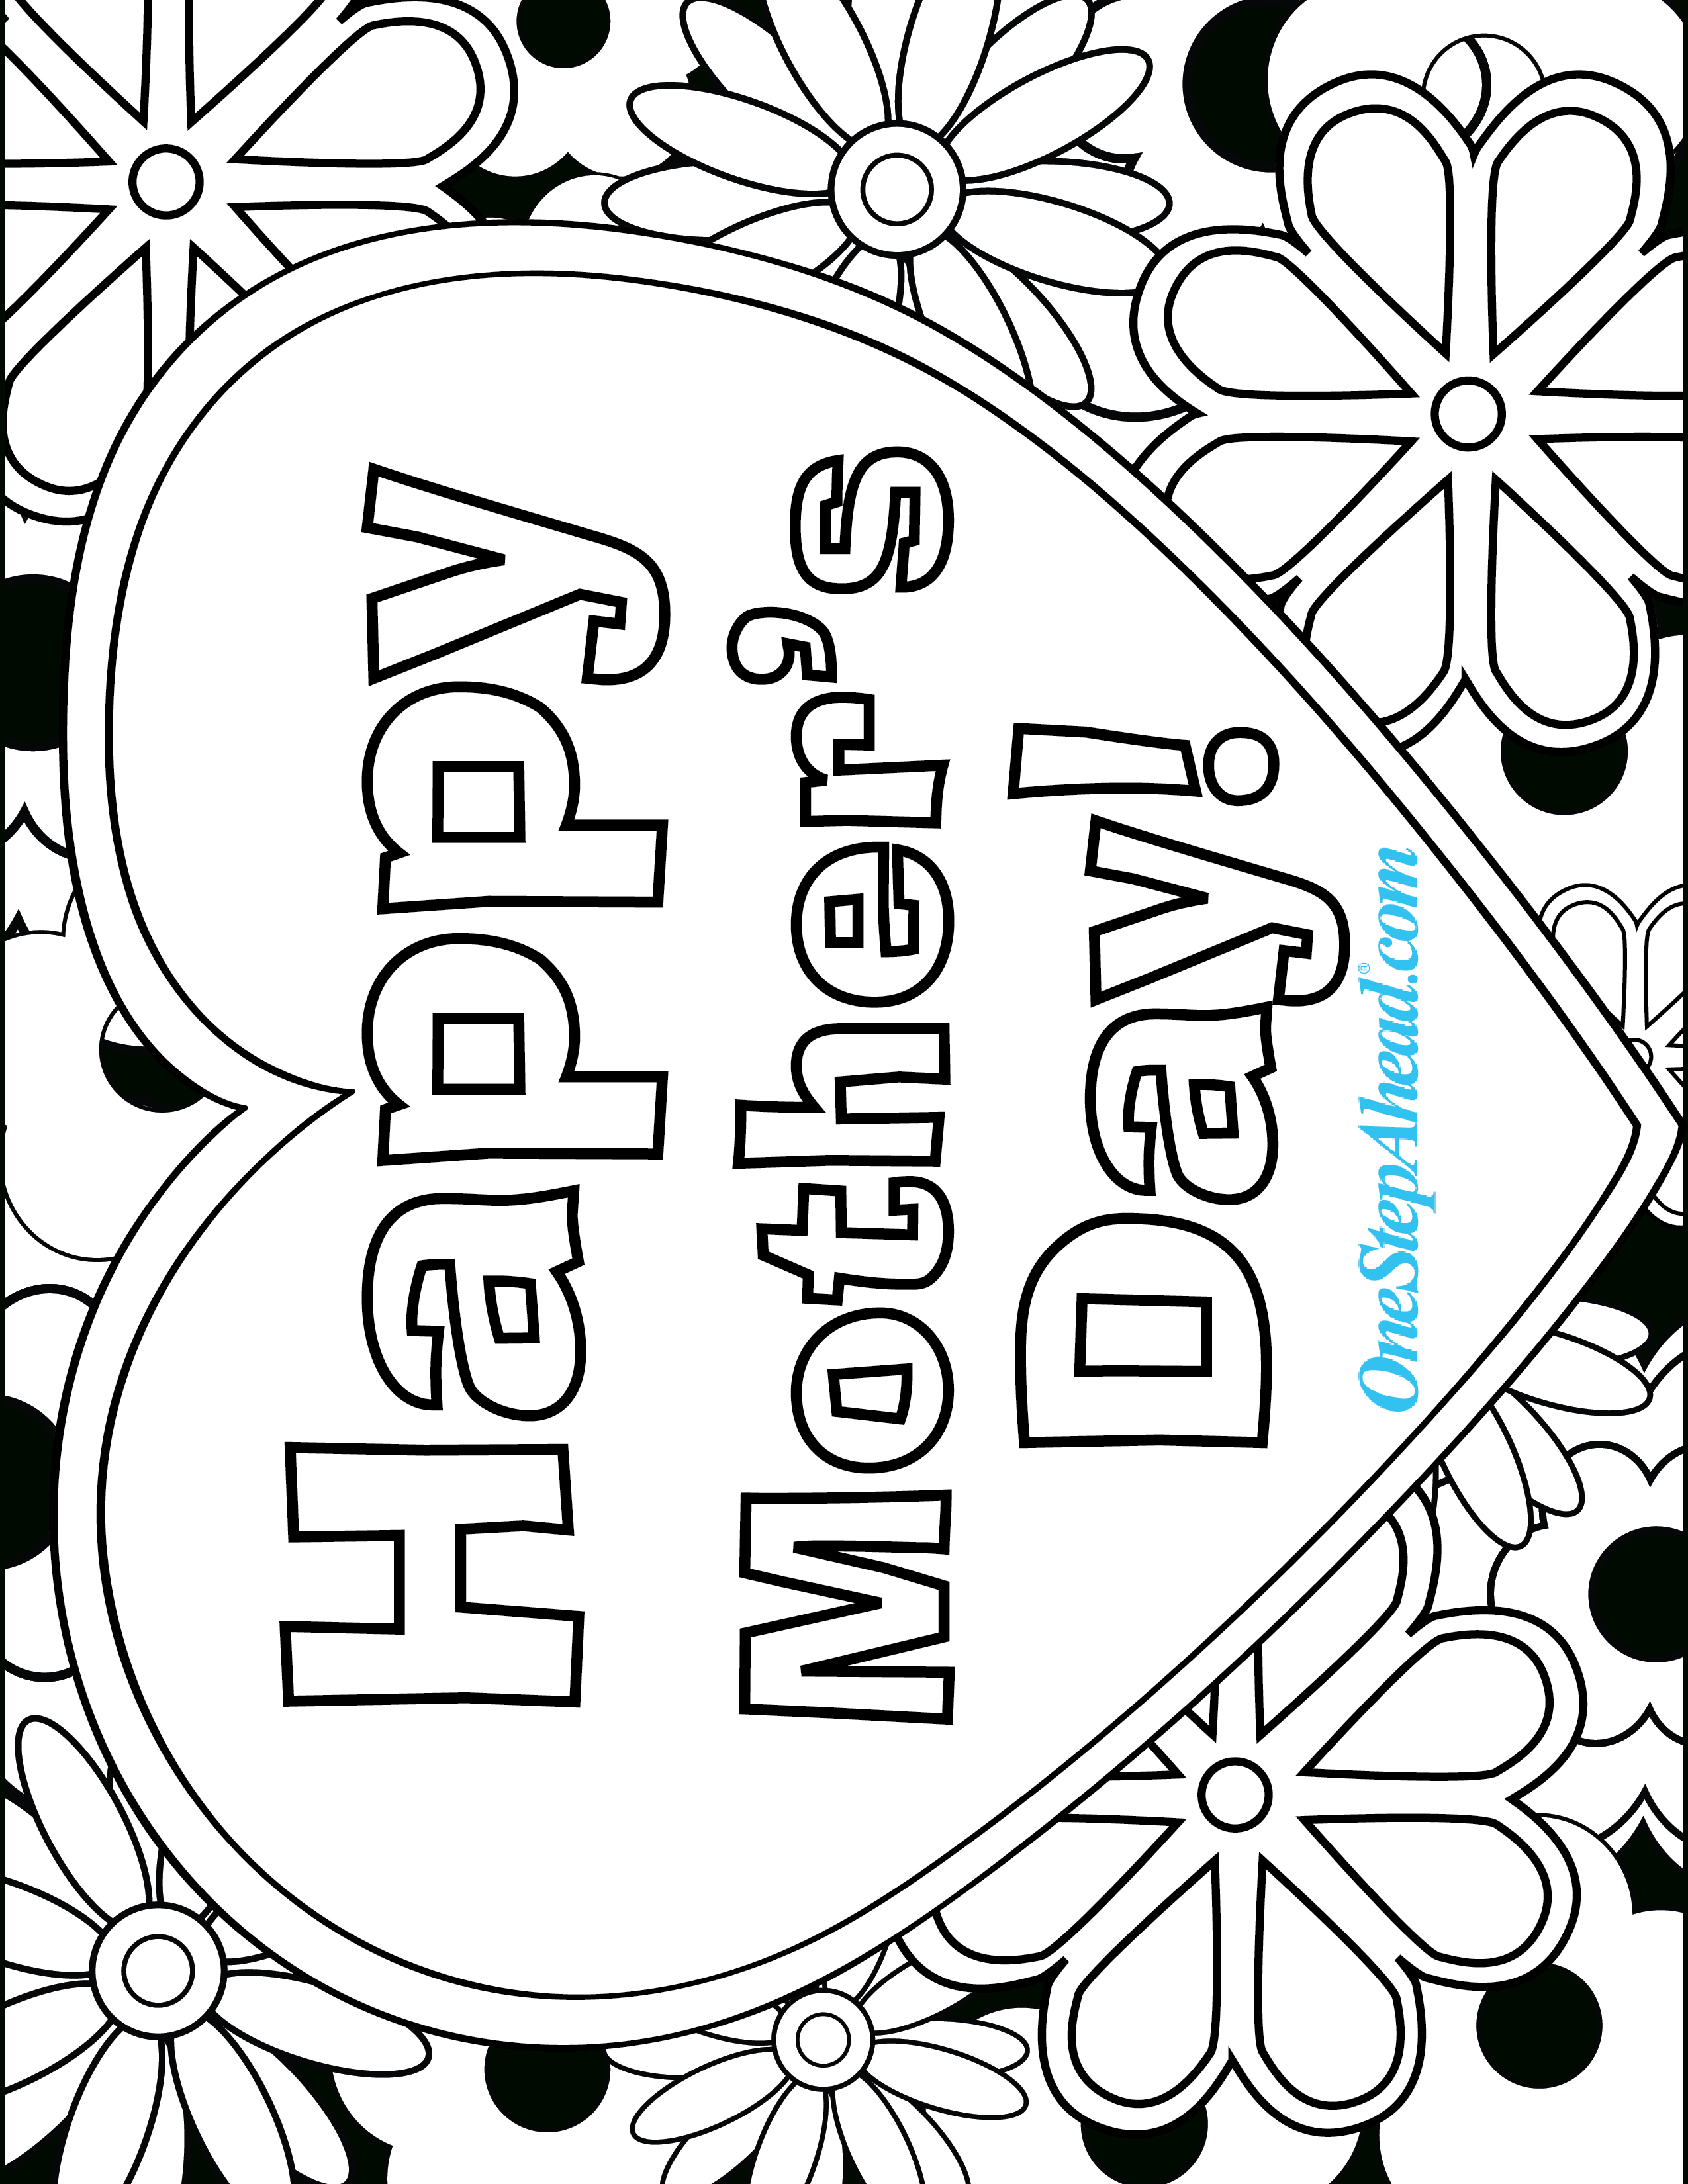 Happy Mother's Day Free Coloring Page Printable For Kids! | Mother's - Free Printable Mothers Day Cards Blue Mountain